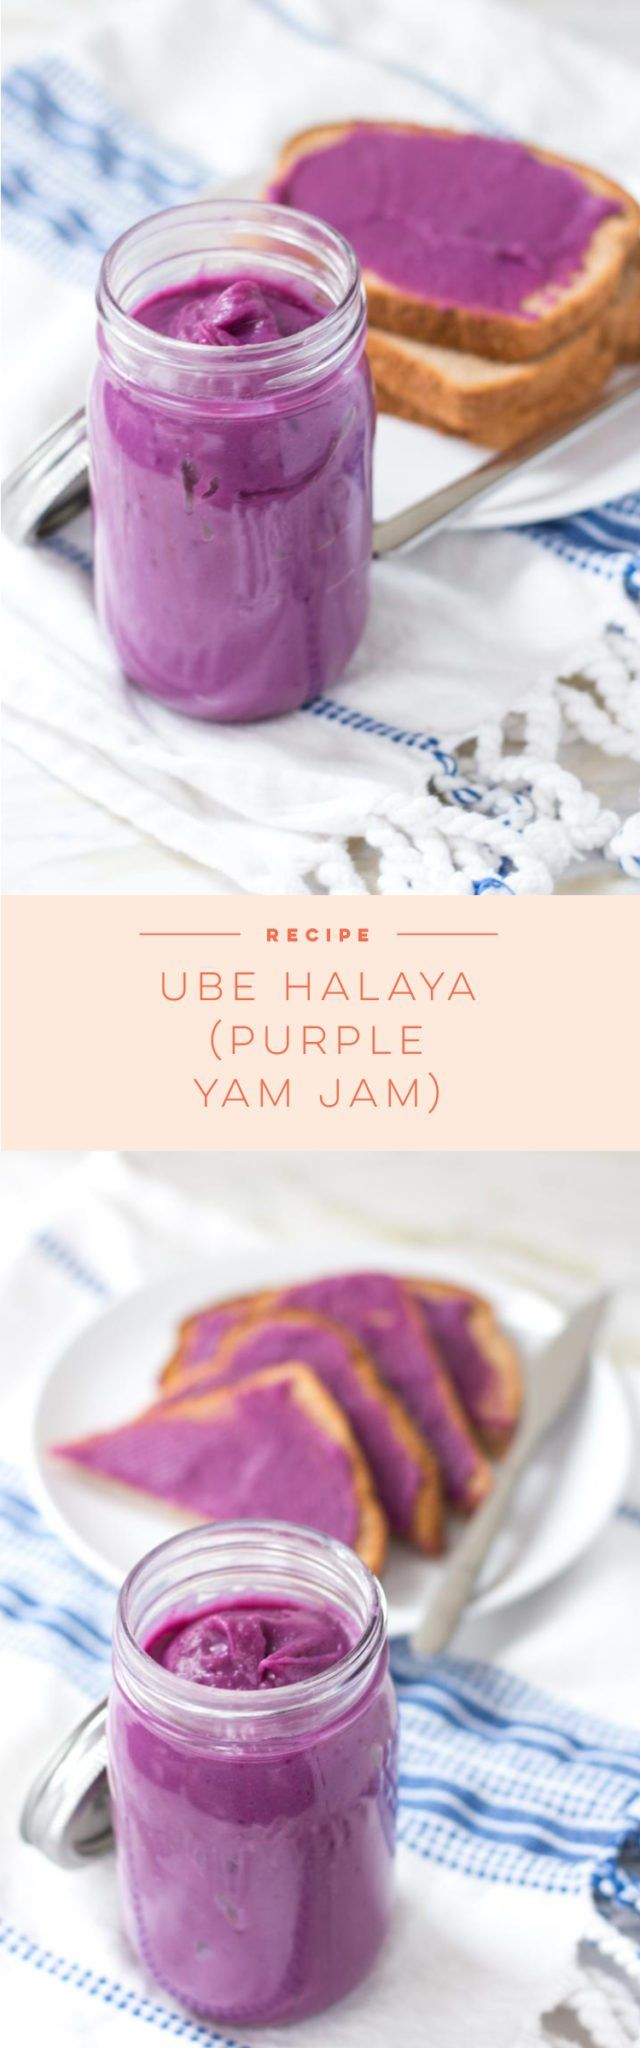 Easy recipe to make Ube Halaya or purple yam spread.